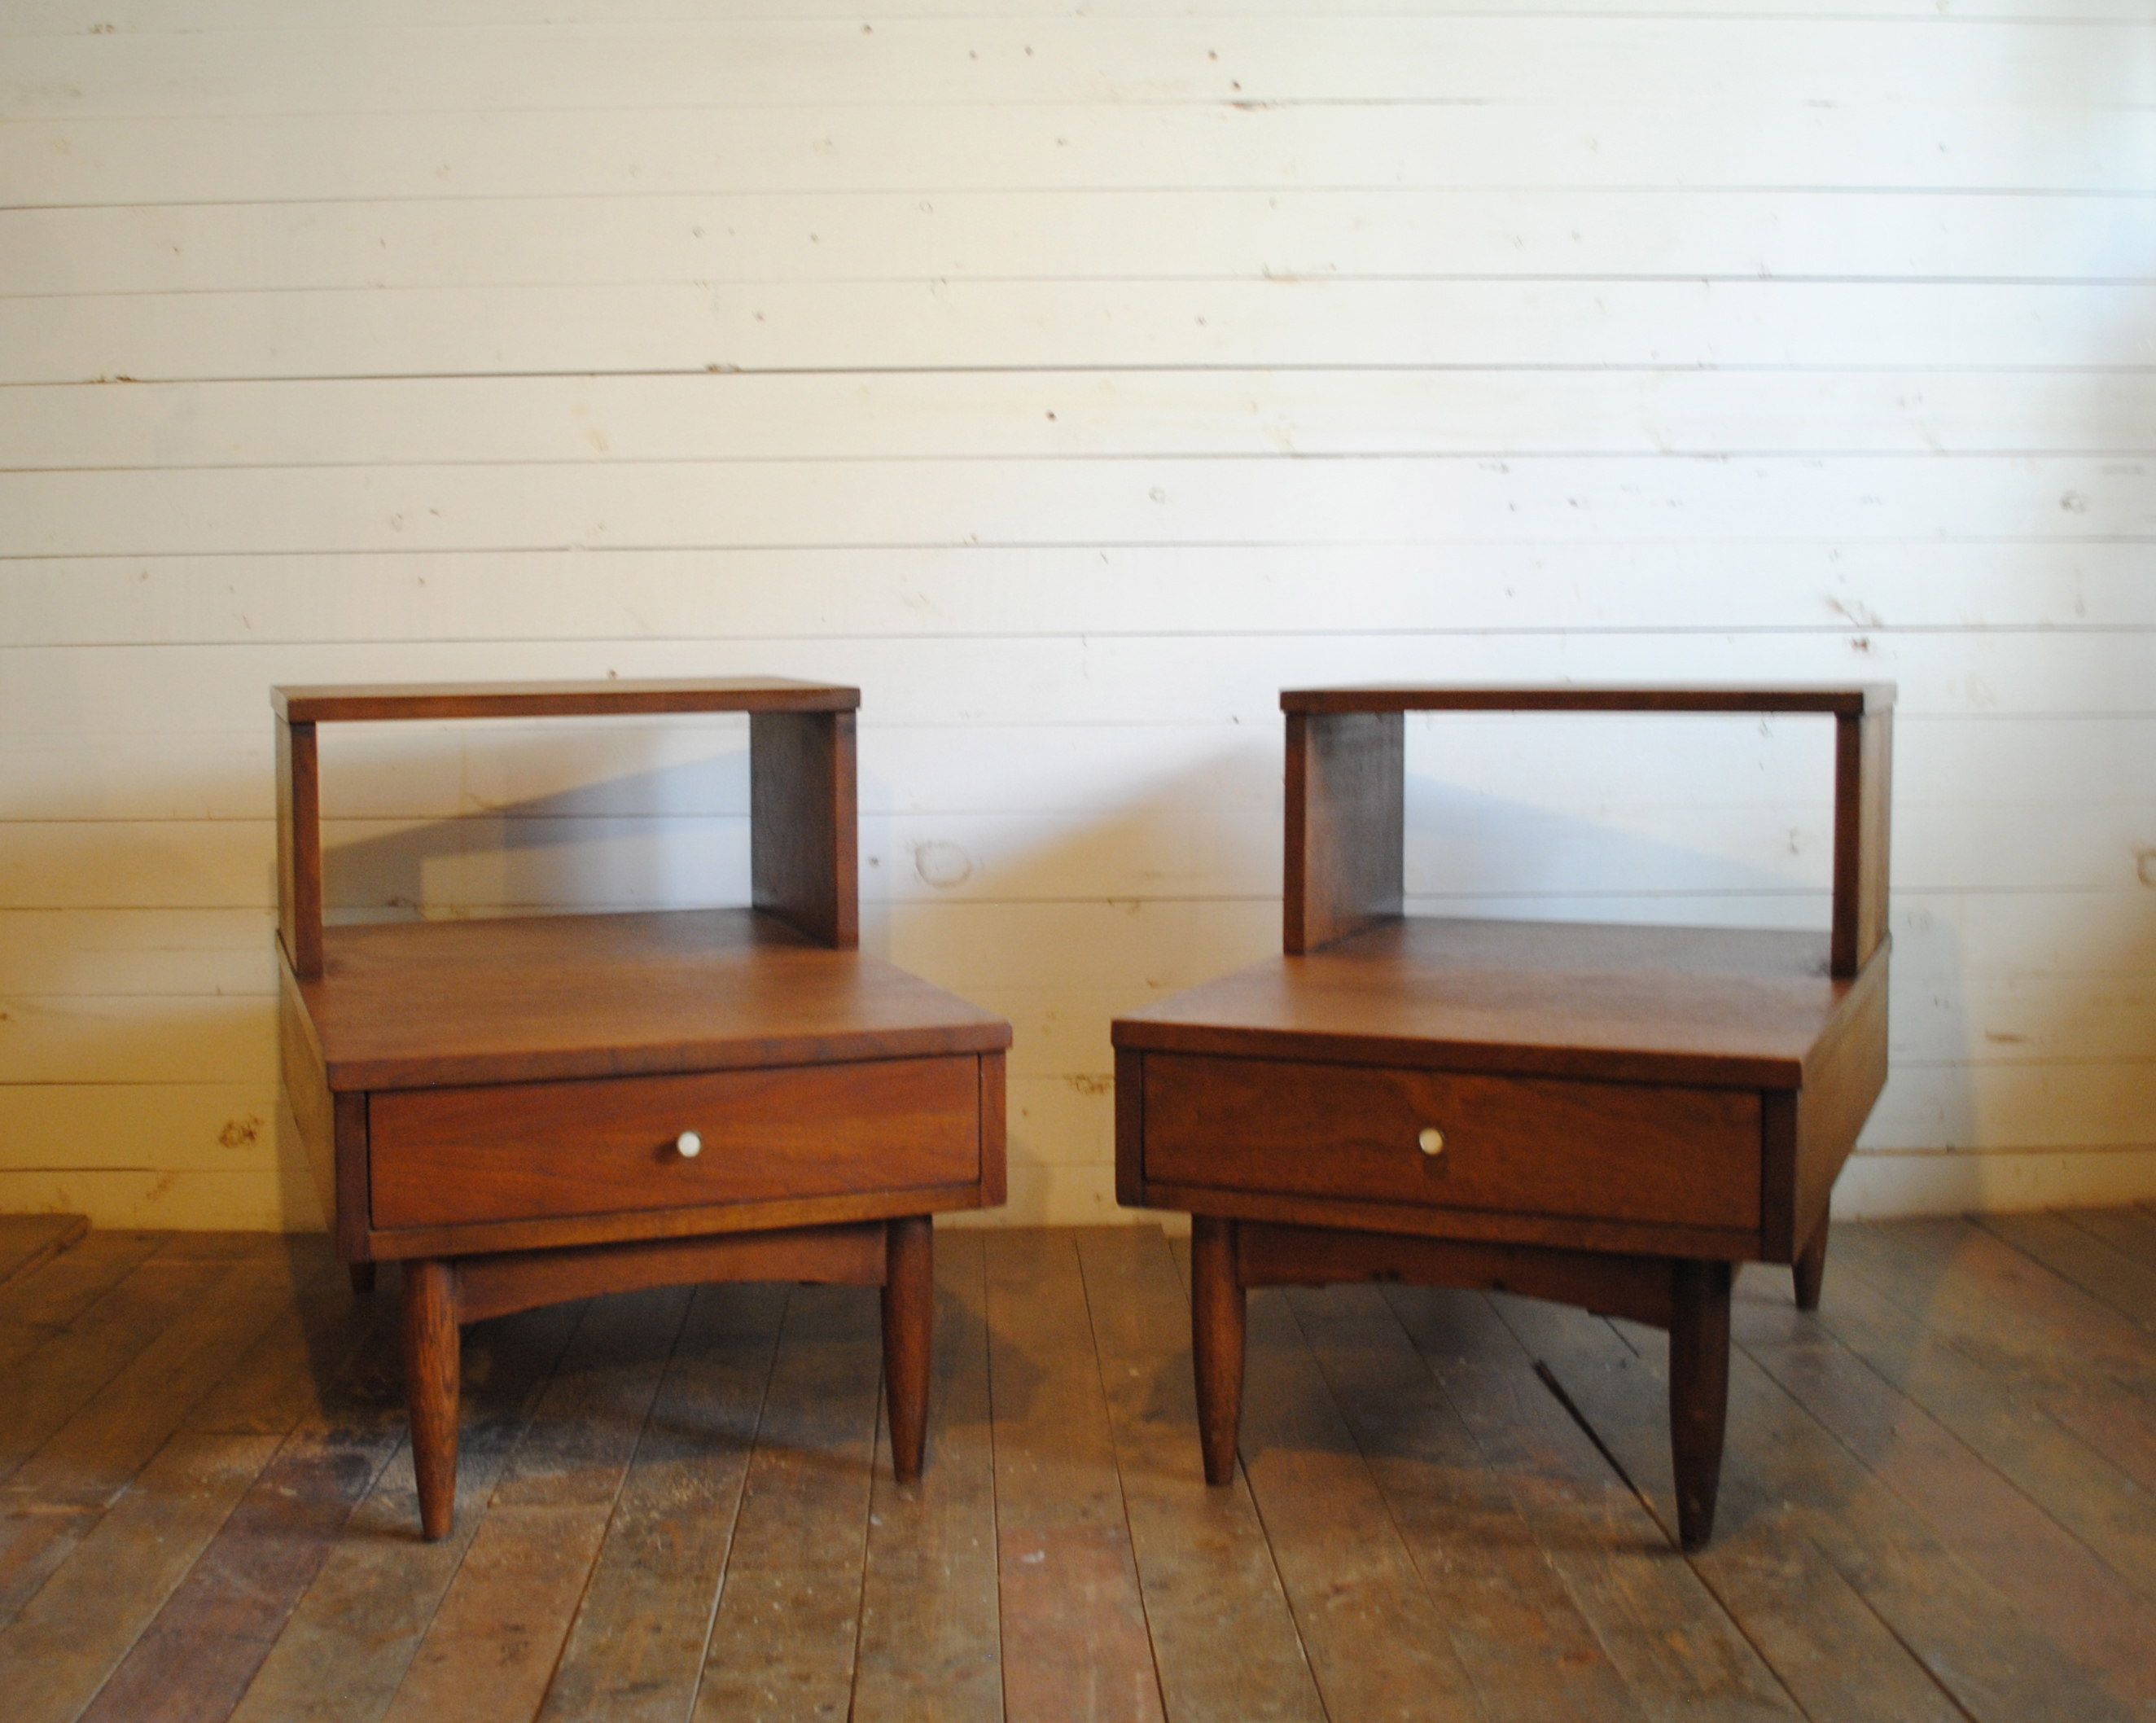 Incroyable Beautiful Mid Century Walnut End Tables. Dimensions Are 28L X 18.5u2033W X  13.5u2033H (lower) 22.25u2033H (upper). Please Contact Me With Any Questions.